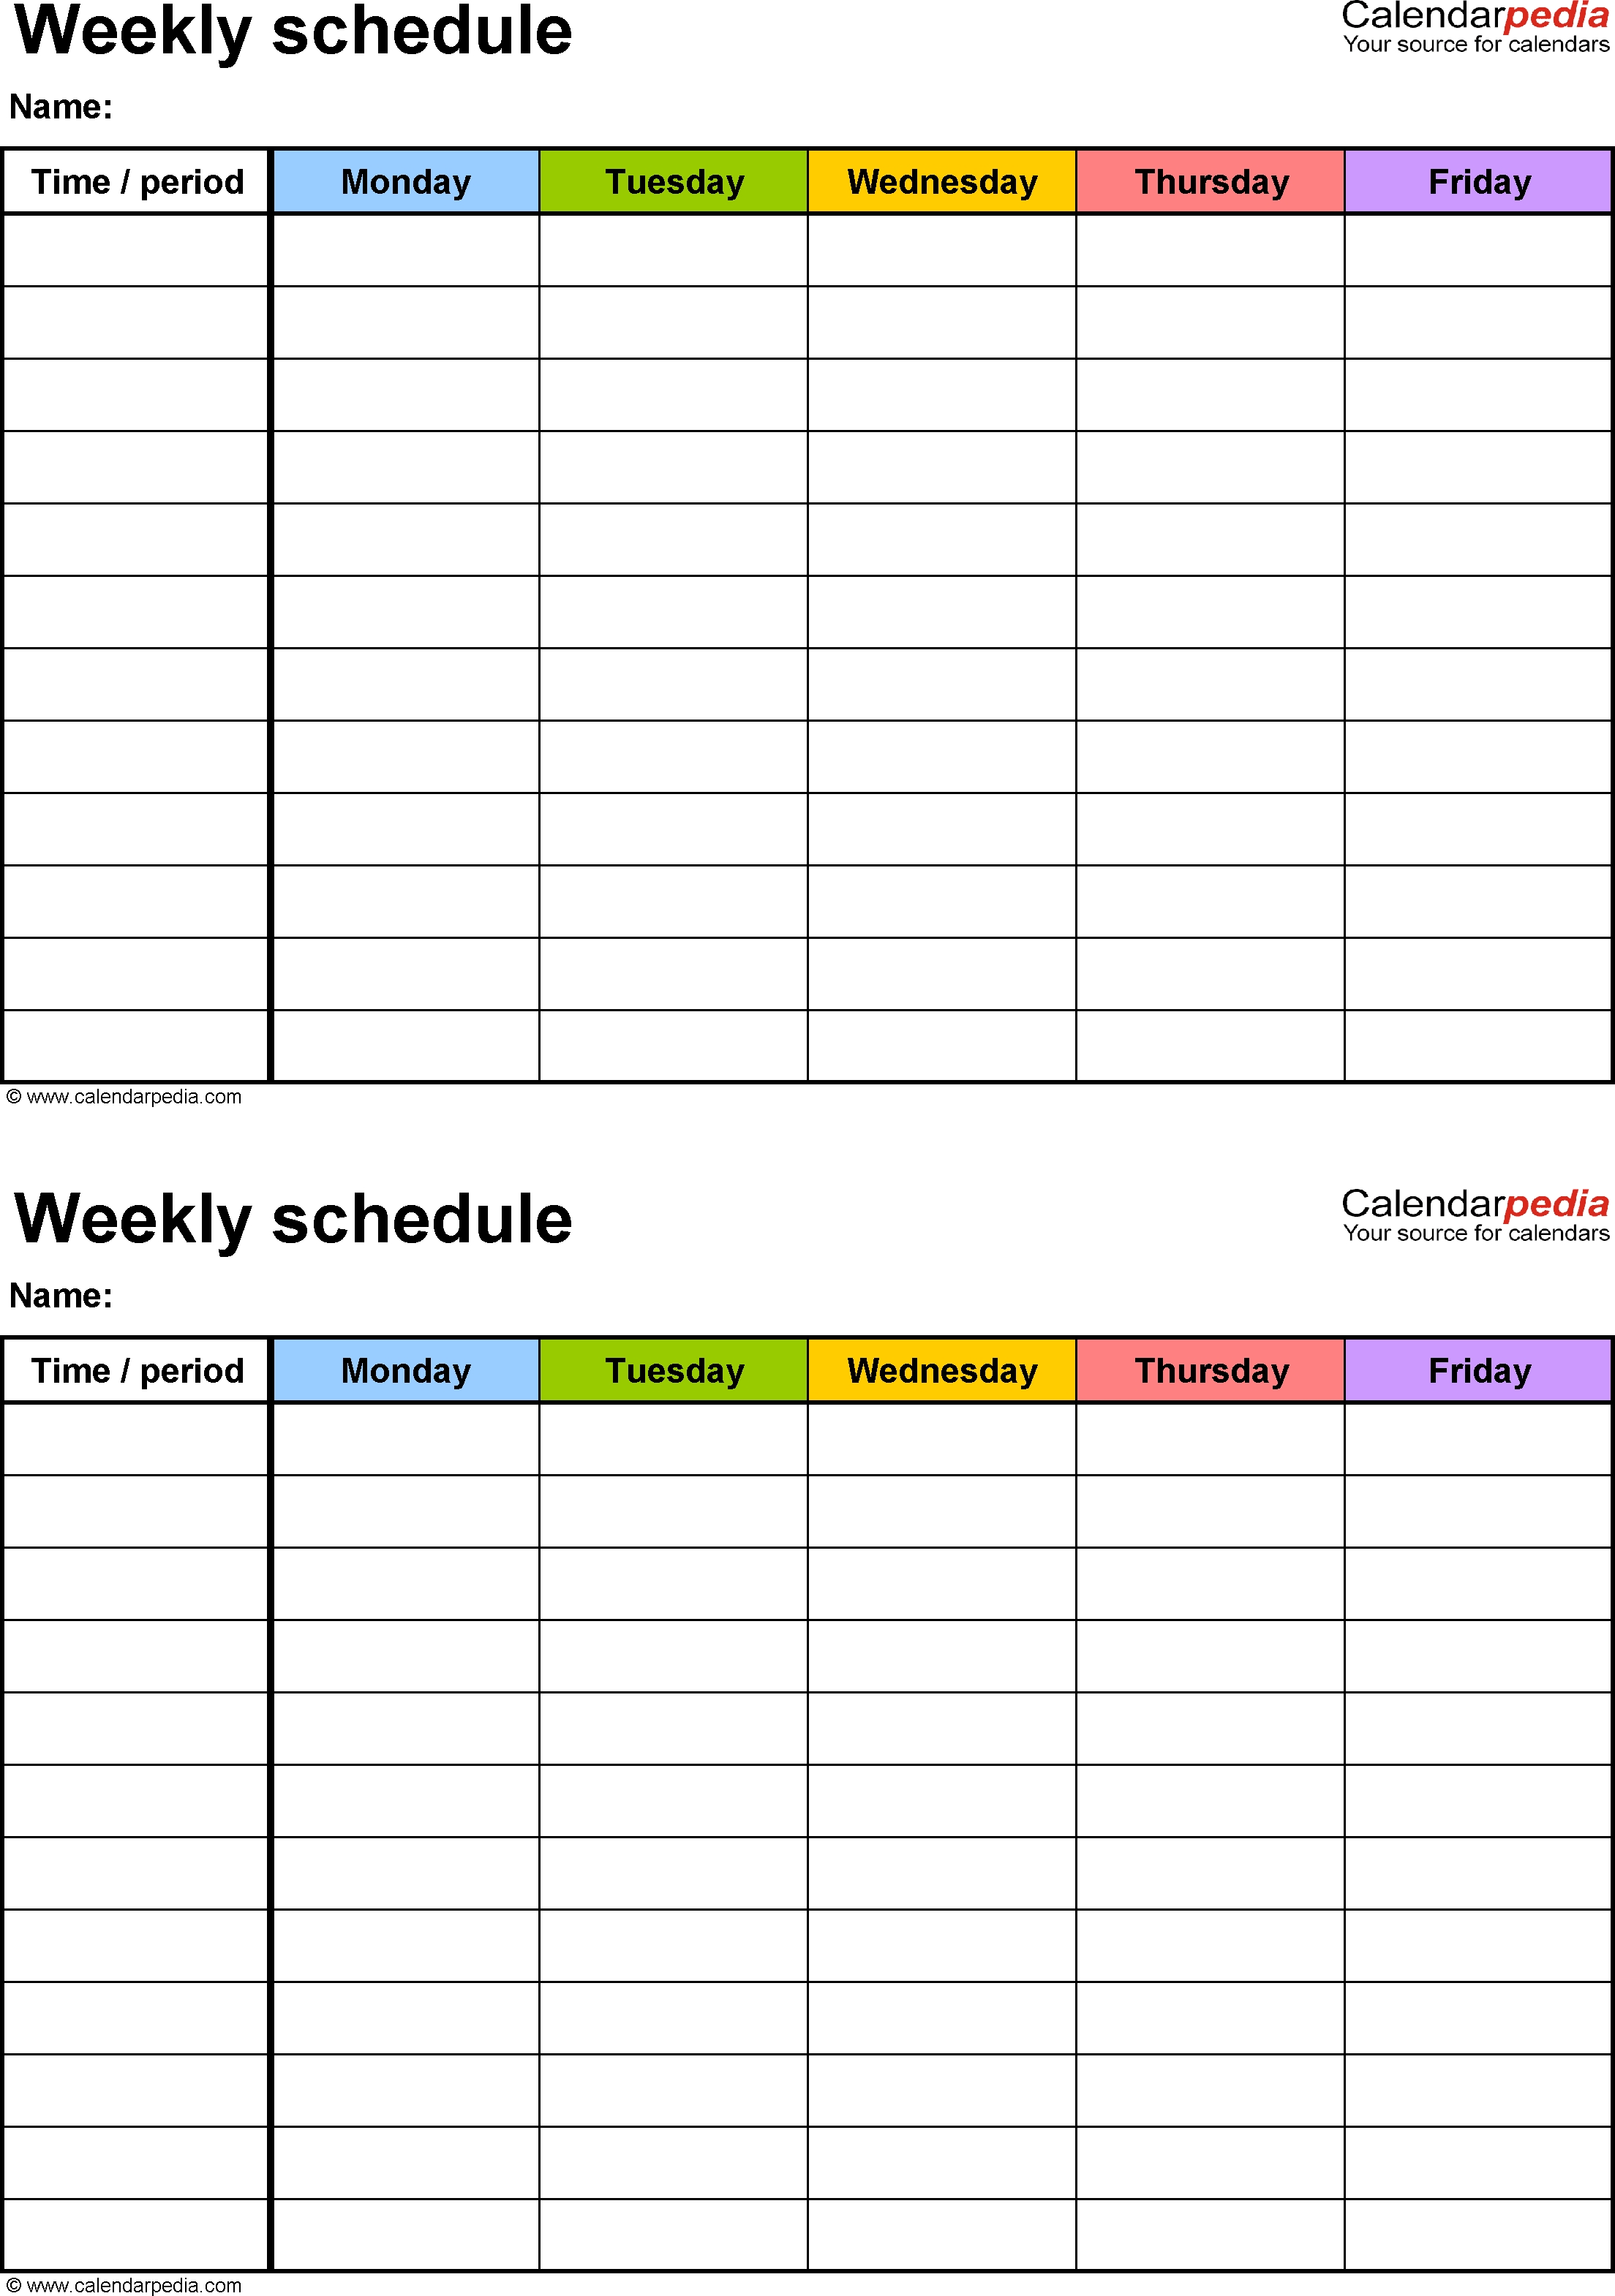 Weekly Schedule Template For Excel Version 3: 2 Schedules On One  7 Day Calendar Template Fillable